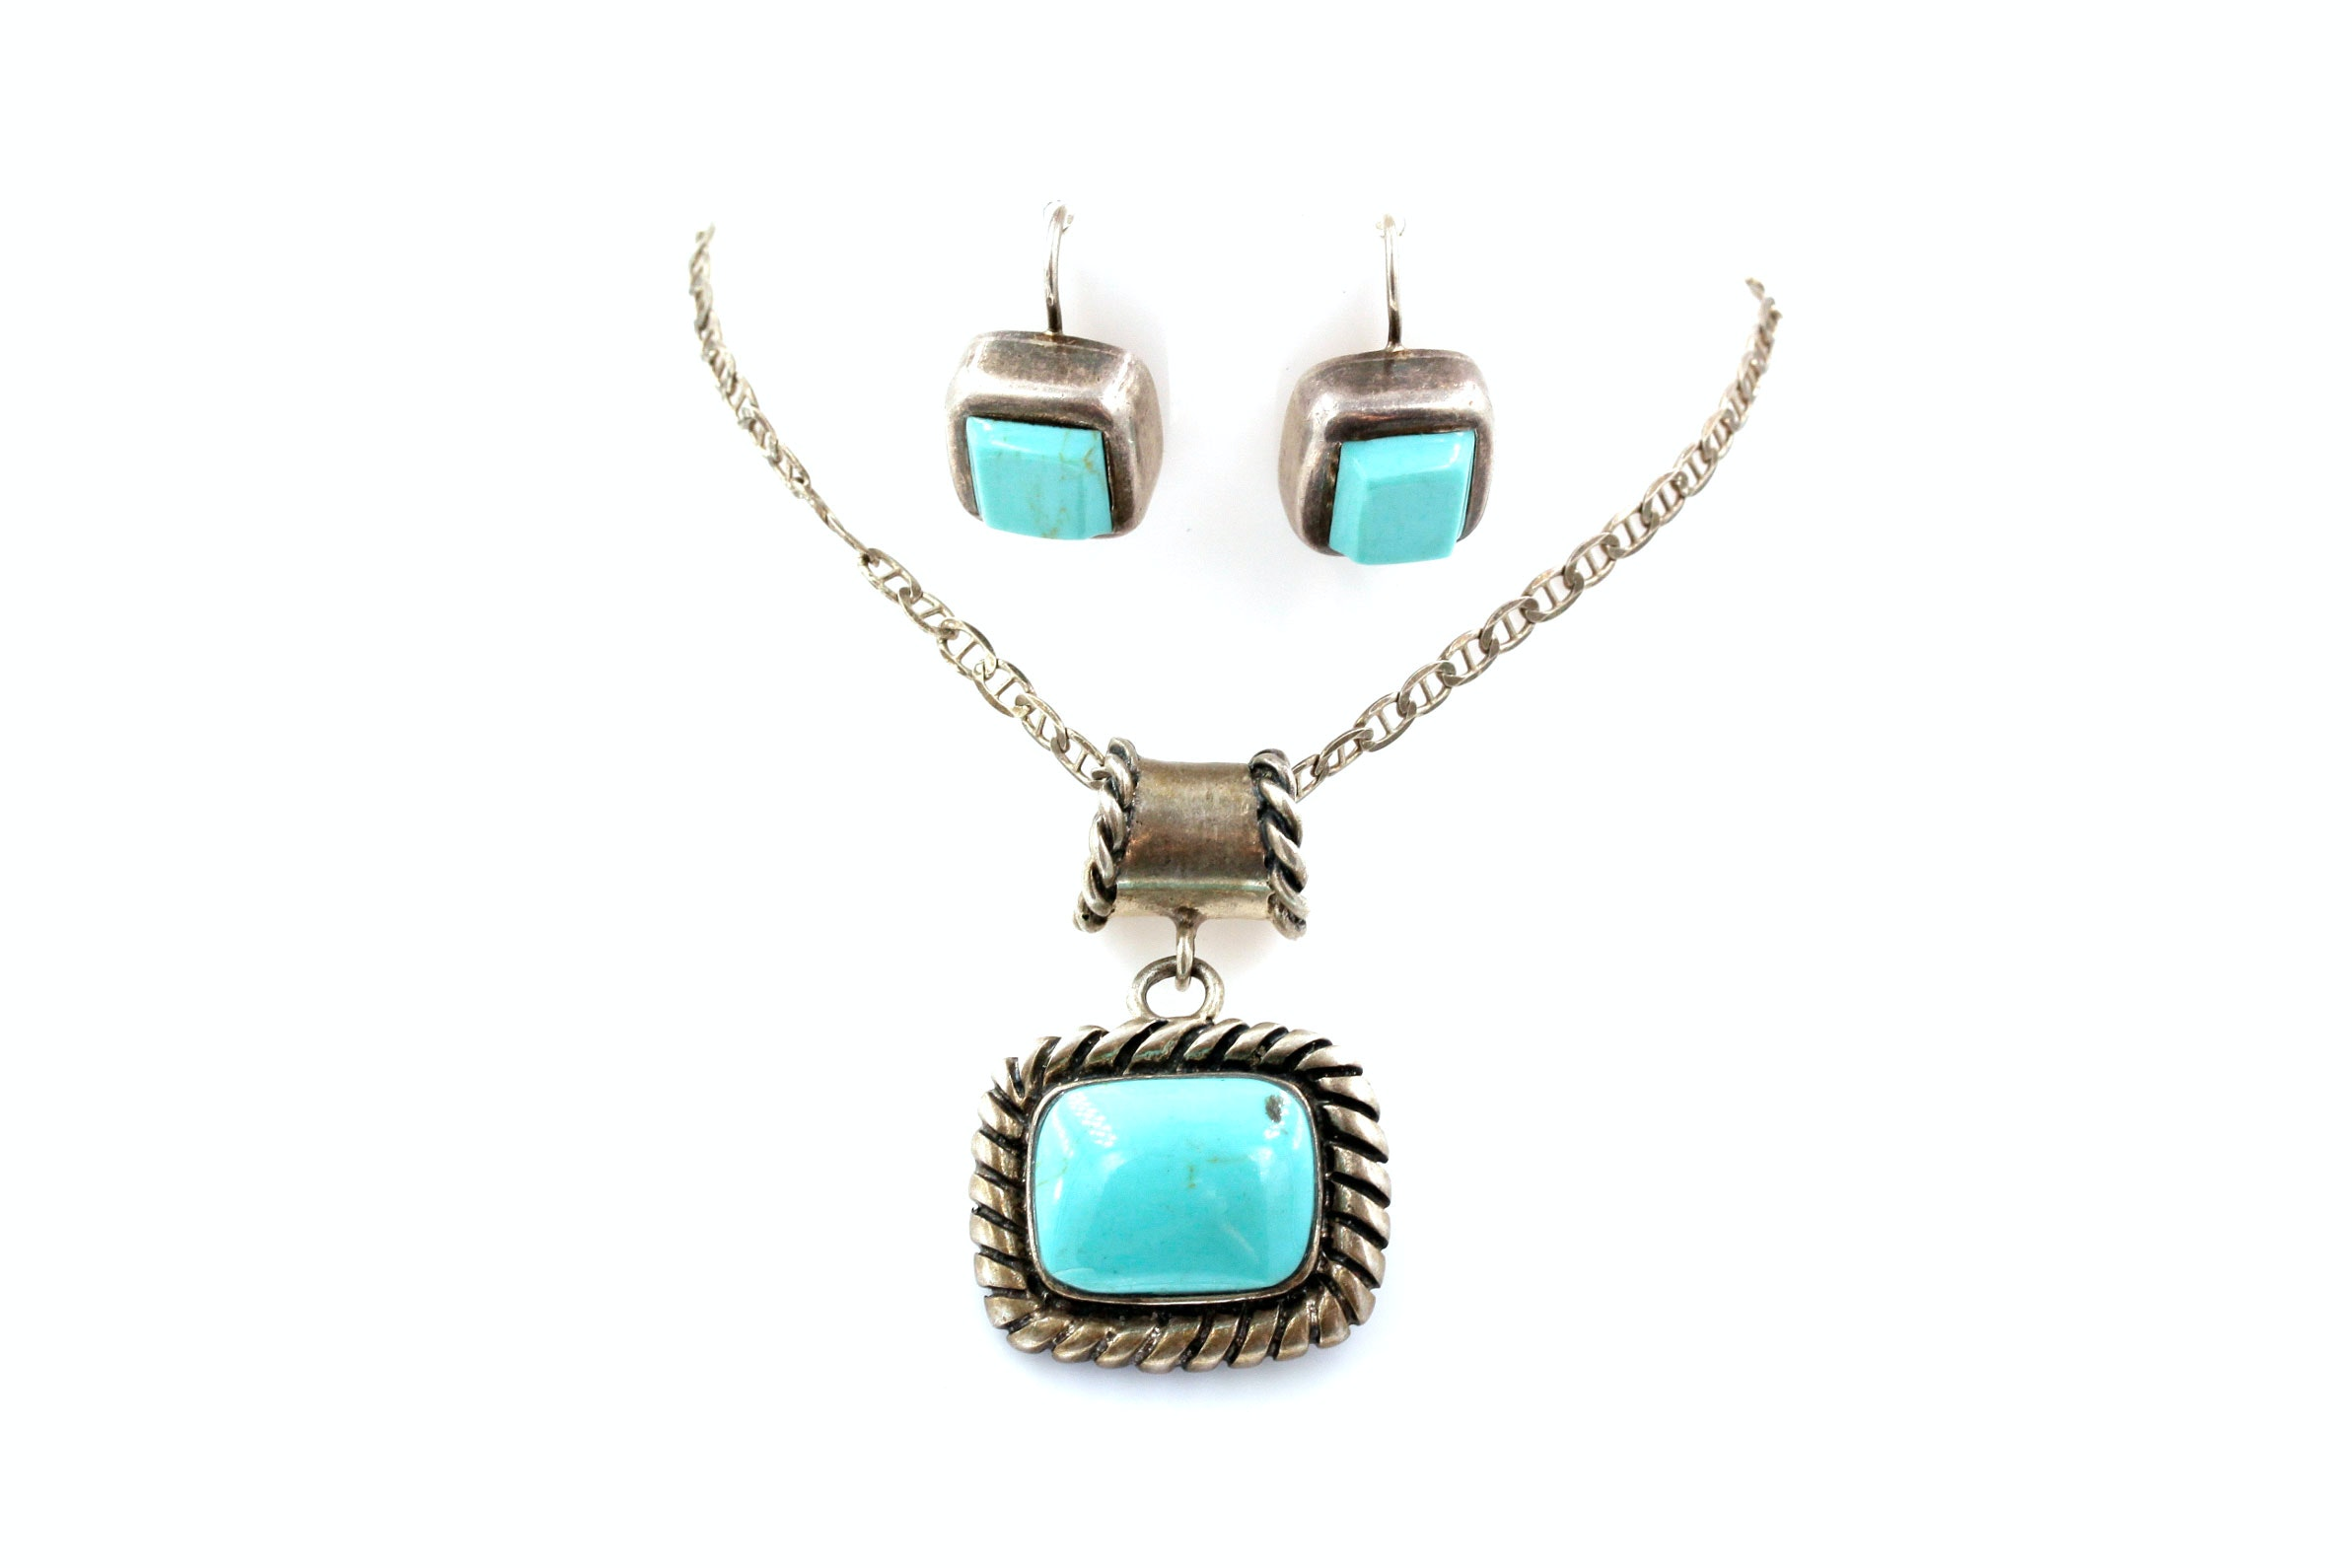 Sterling Silver Necklace and Earrings with Synthetic Turquoise